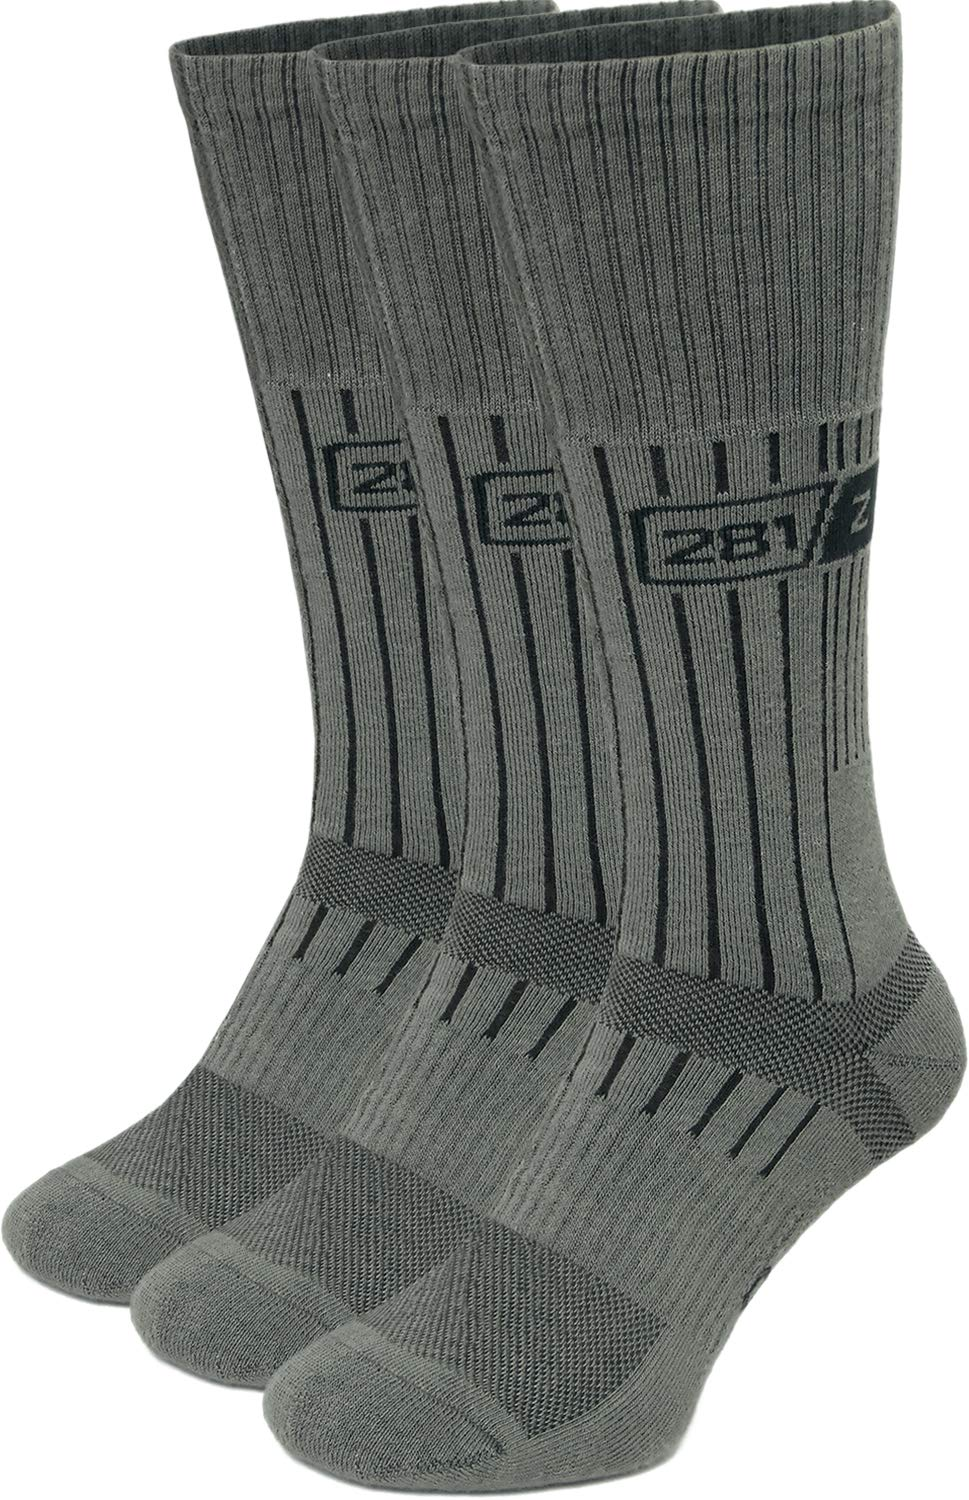 Military Boot Socks - Tactical Trekking Hiking - Outdoor Athletic Sport by 281Z (Sage Green)(Small 3 Pairs Pack) by 281Z